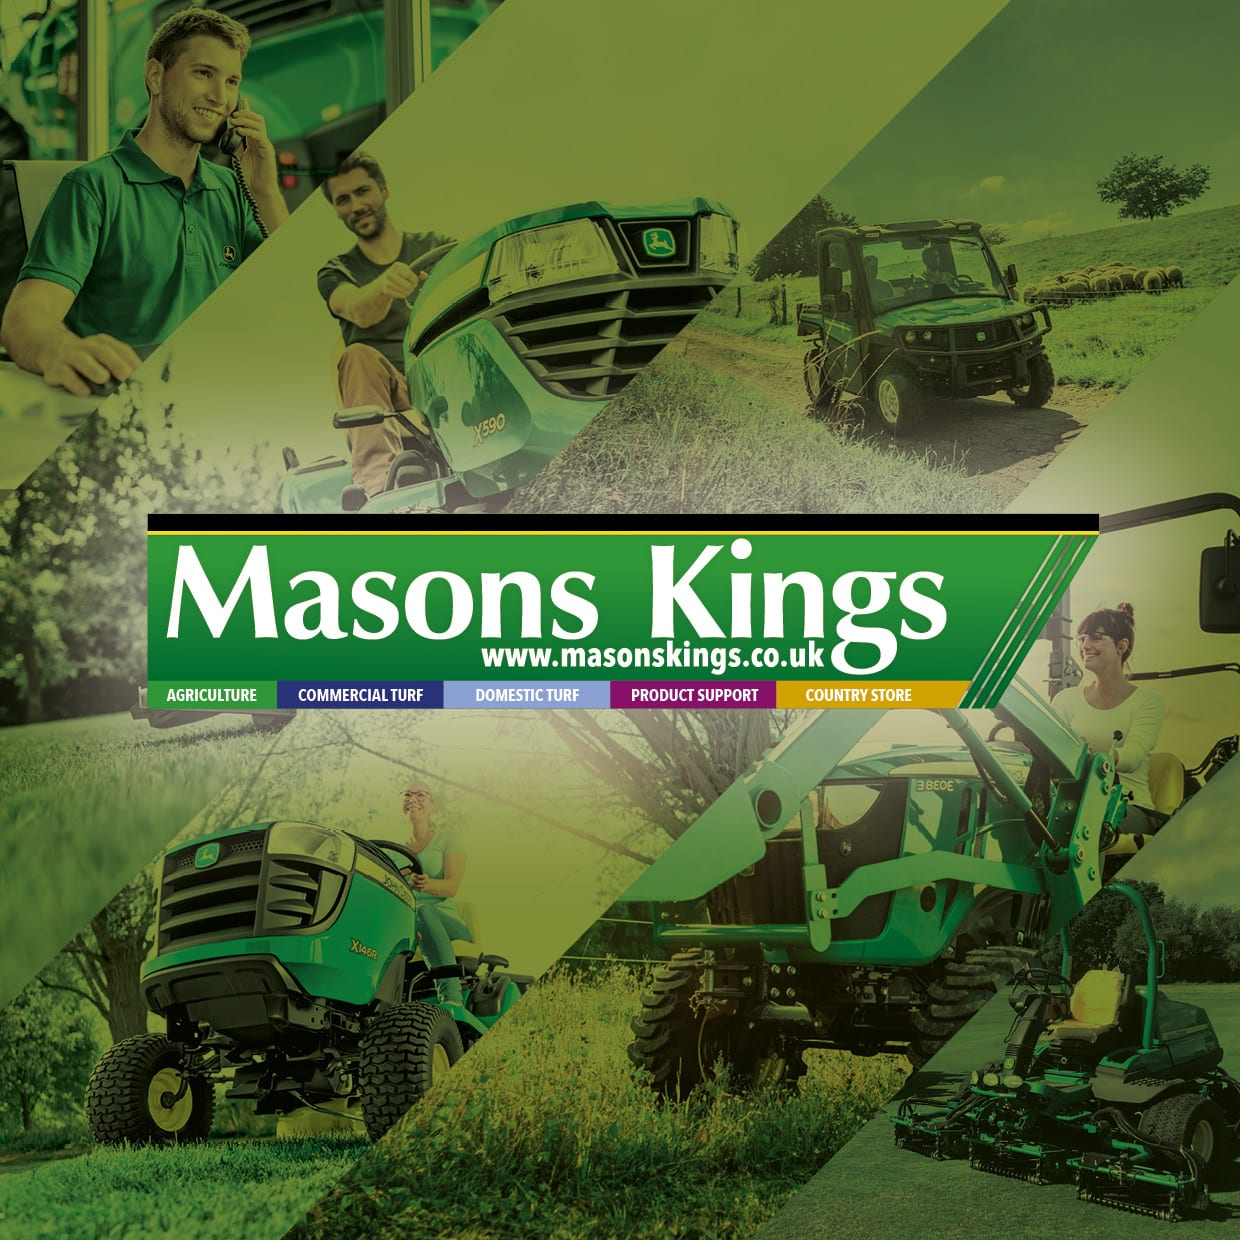 Masons Kings company brochure design